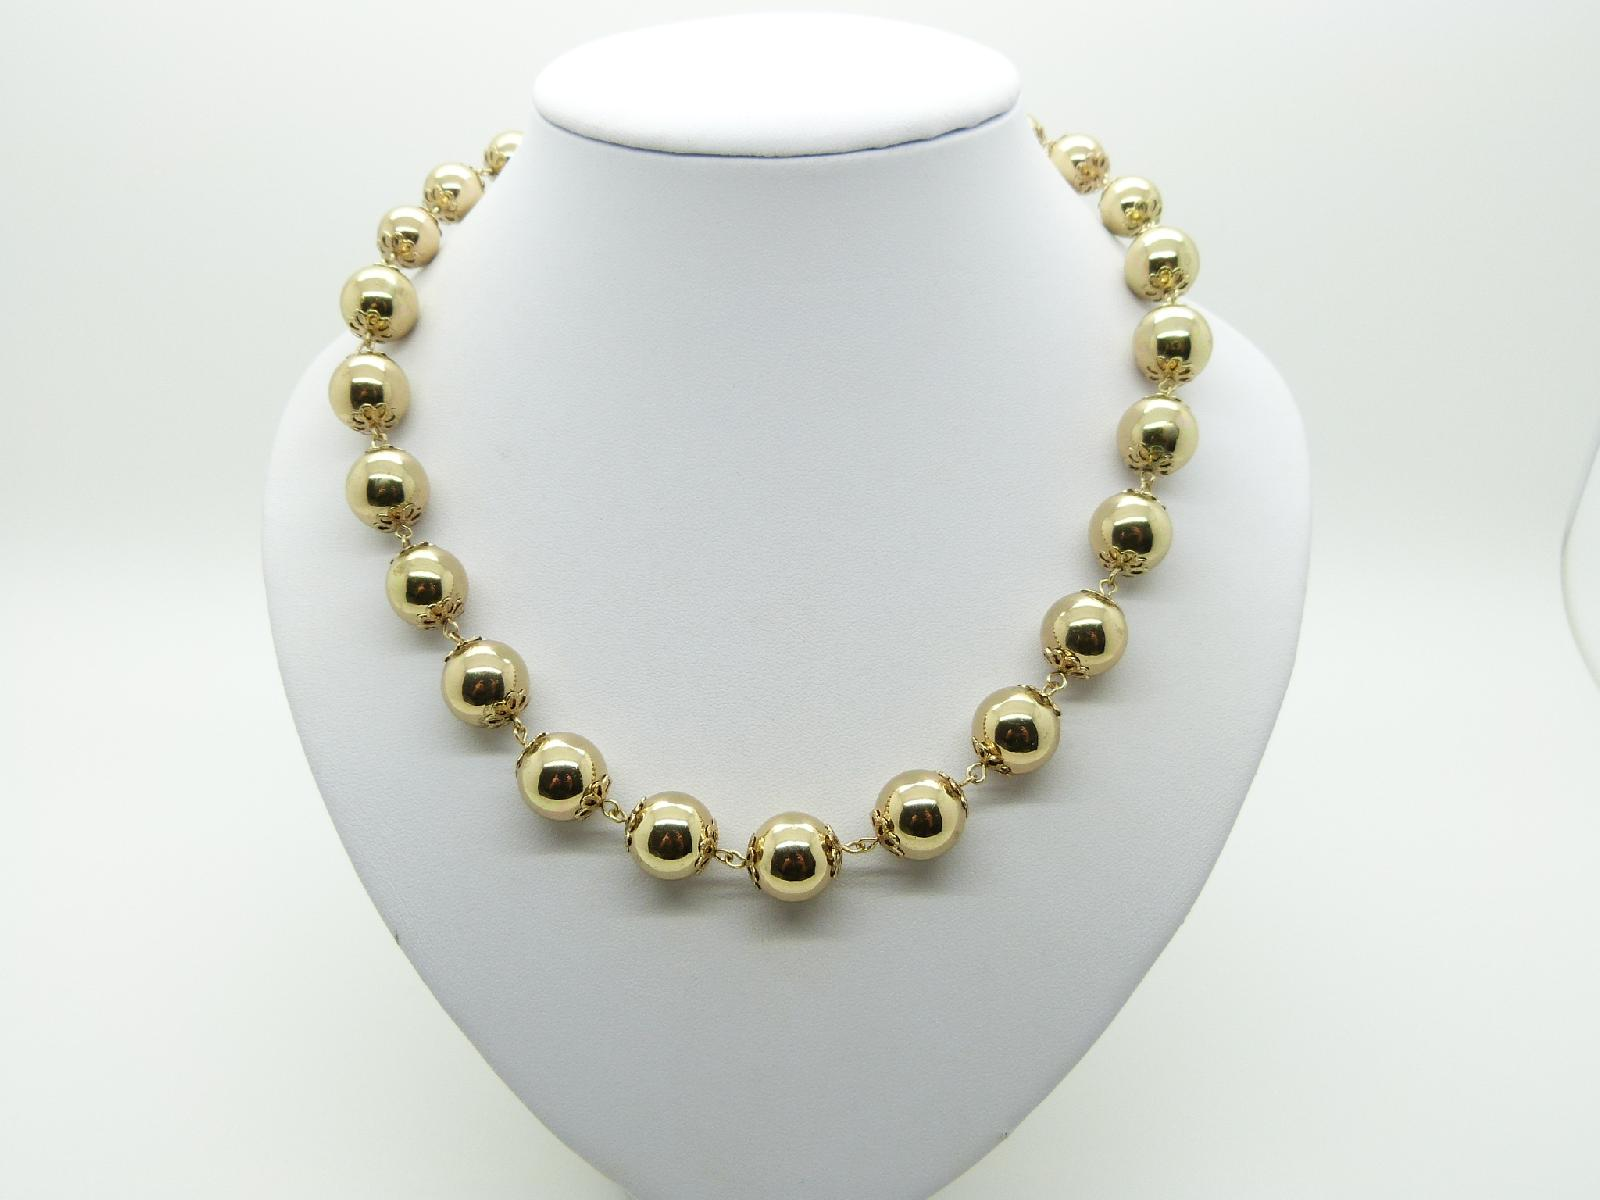 Vintage 50s Attractive Gold Metal Bauble Bead Necklace 51cms